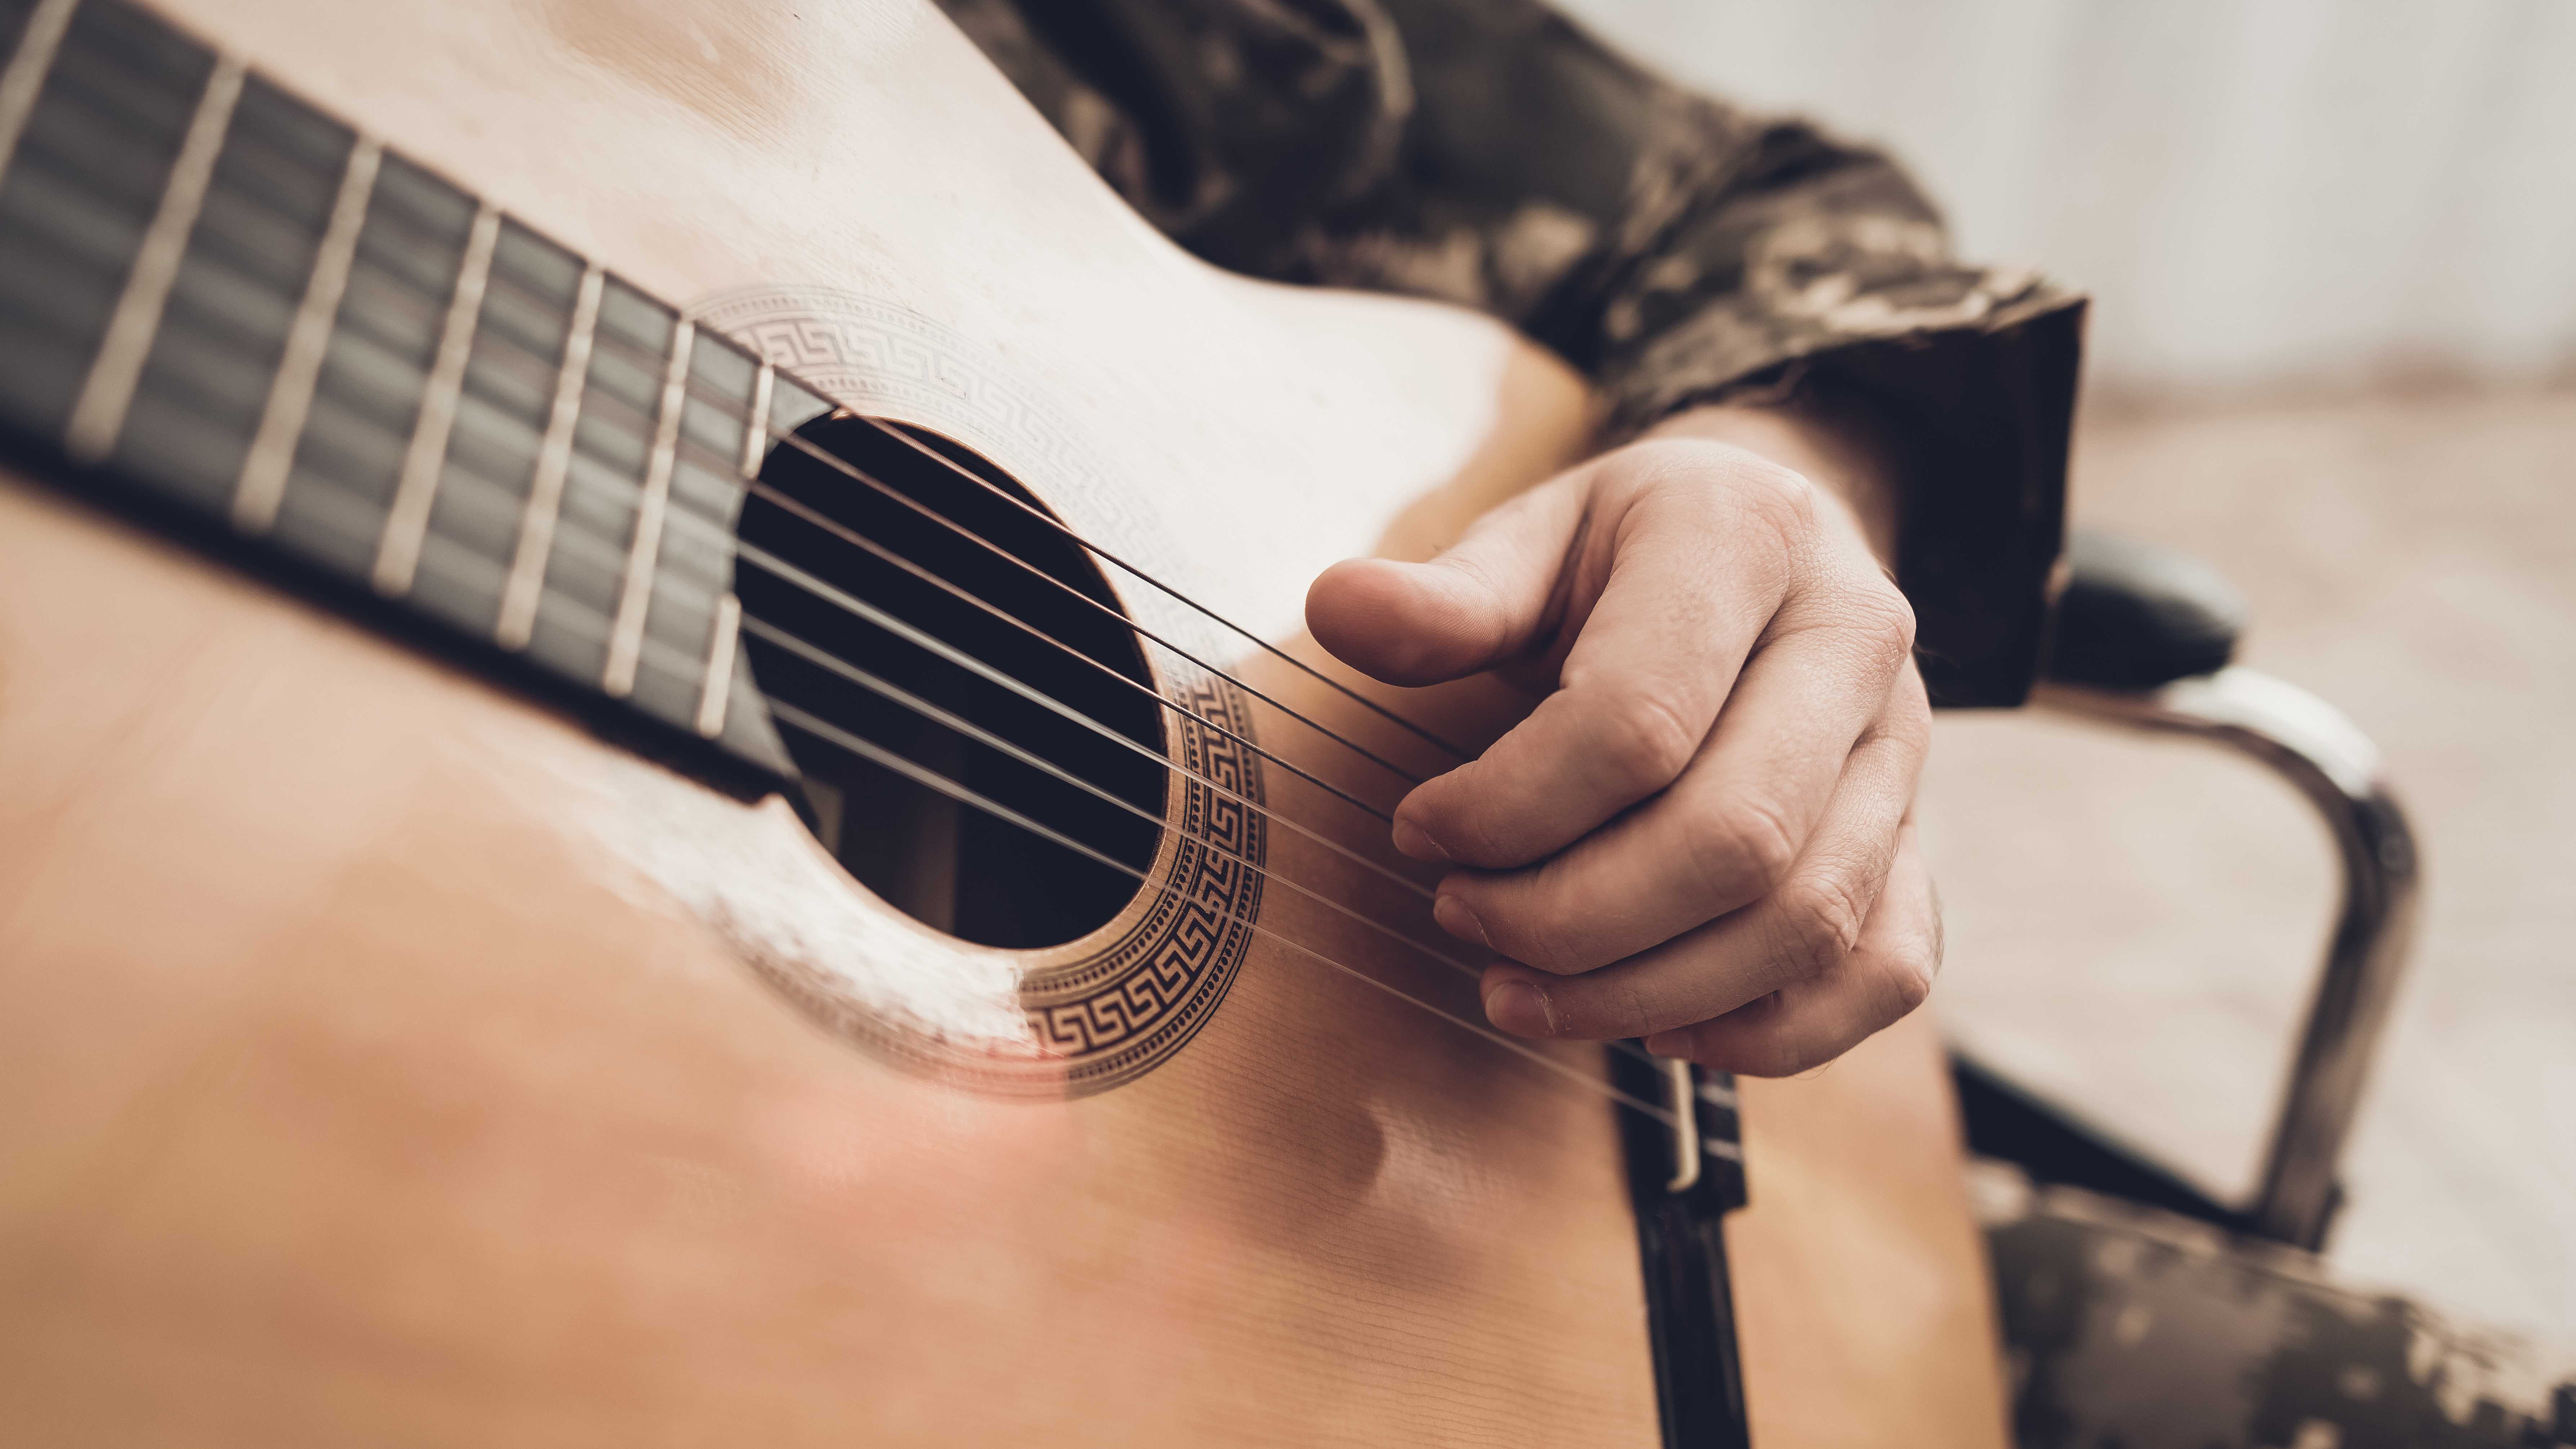 A soldier in fatigues plays a guitar